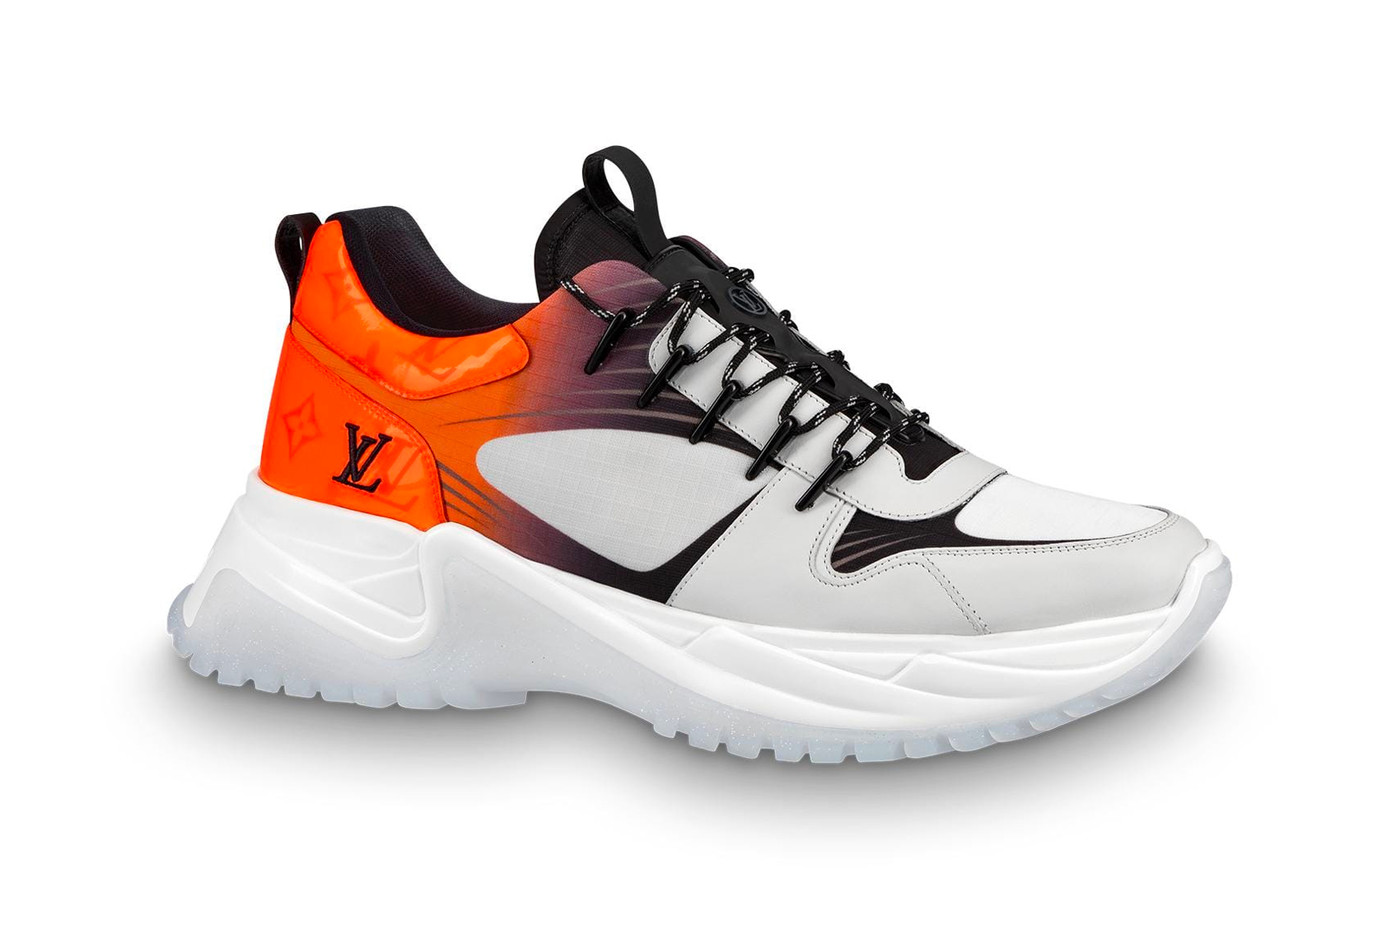 00b7ed18b45 Pick up the new Louis Vuitton Run Away Pulse Sneaker right now for a retail  price set at  1